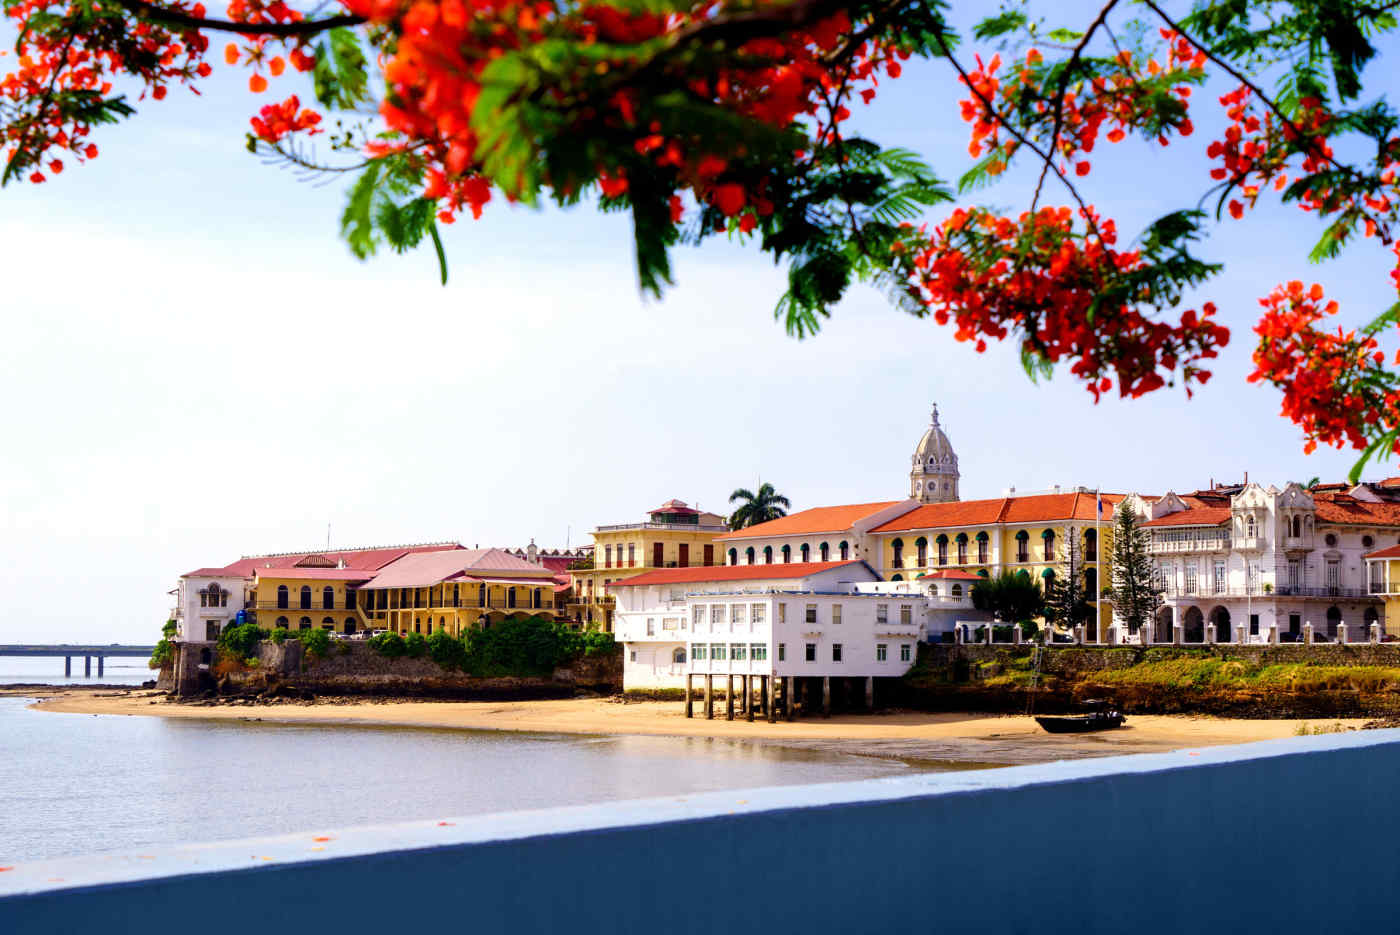 Old Casco Viejo